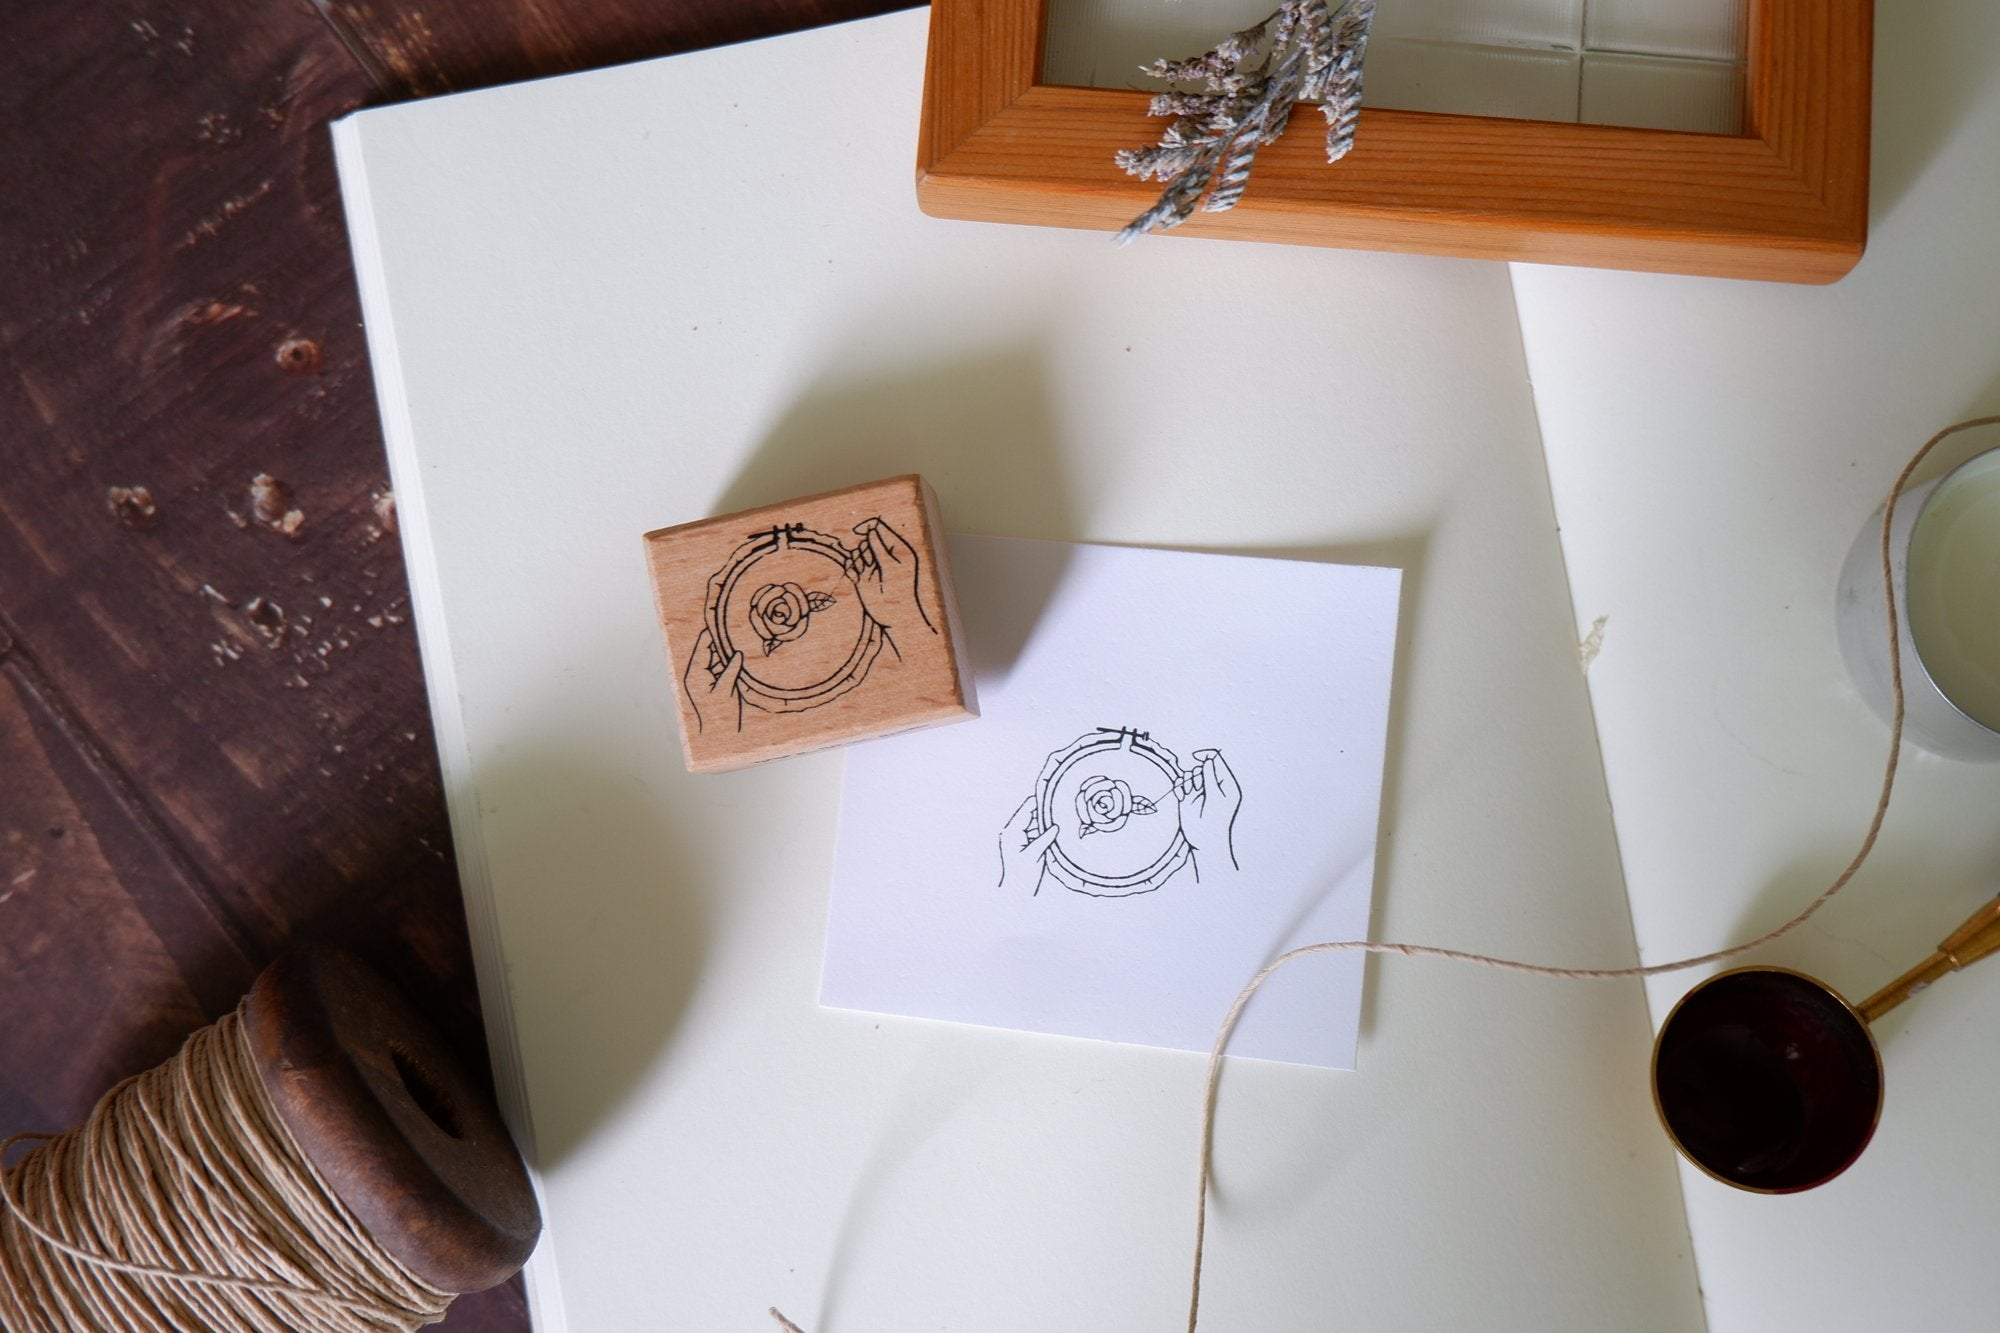 WLEKD Stationery Rubber Stamp - Embroidery